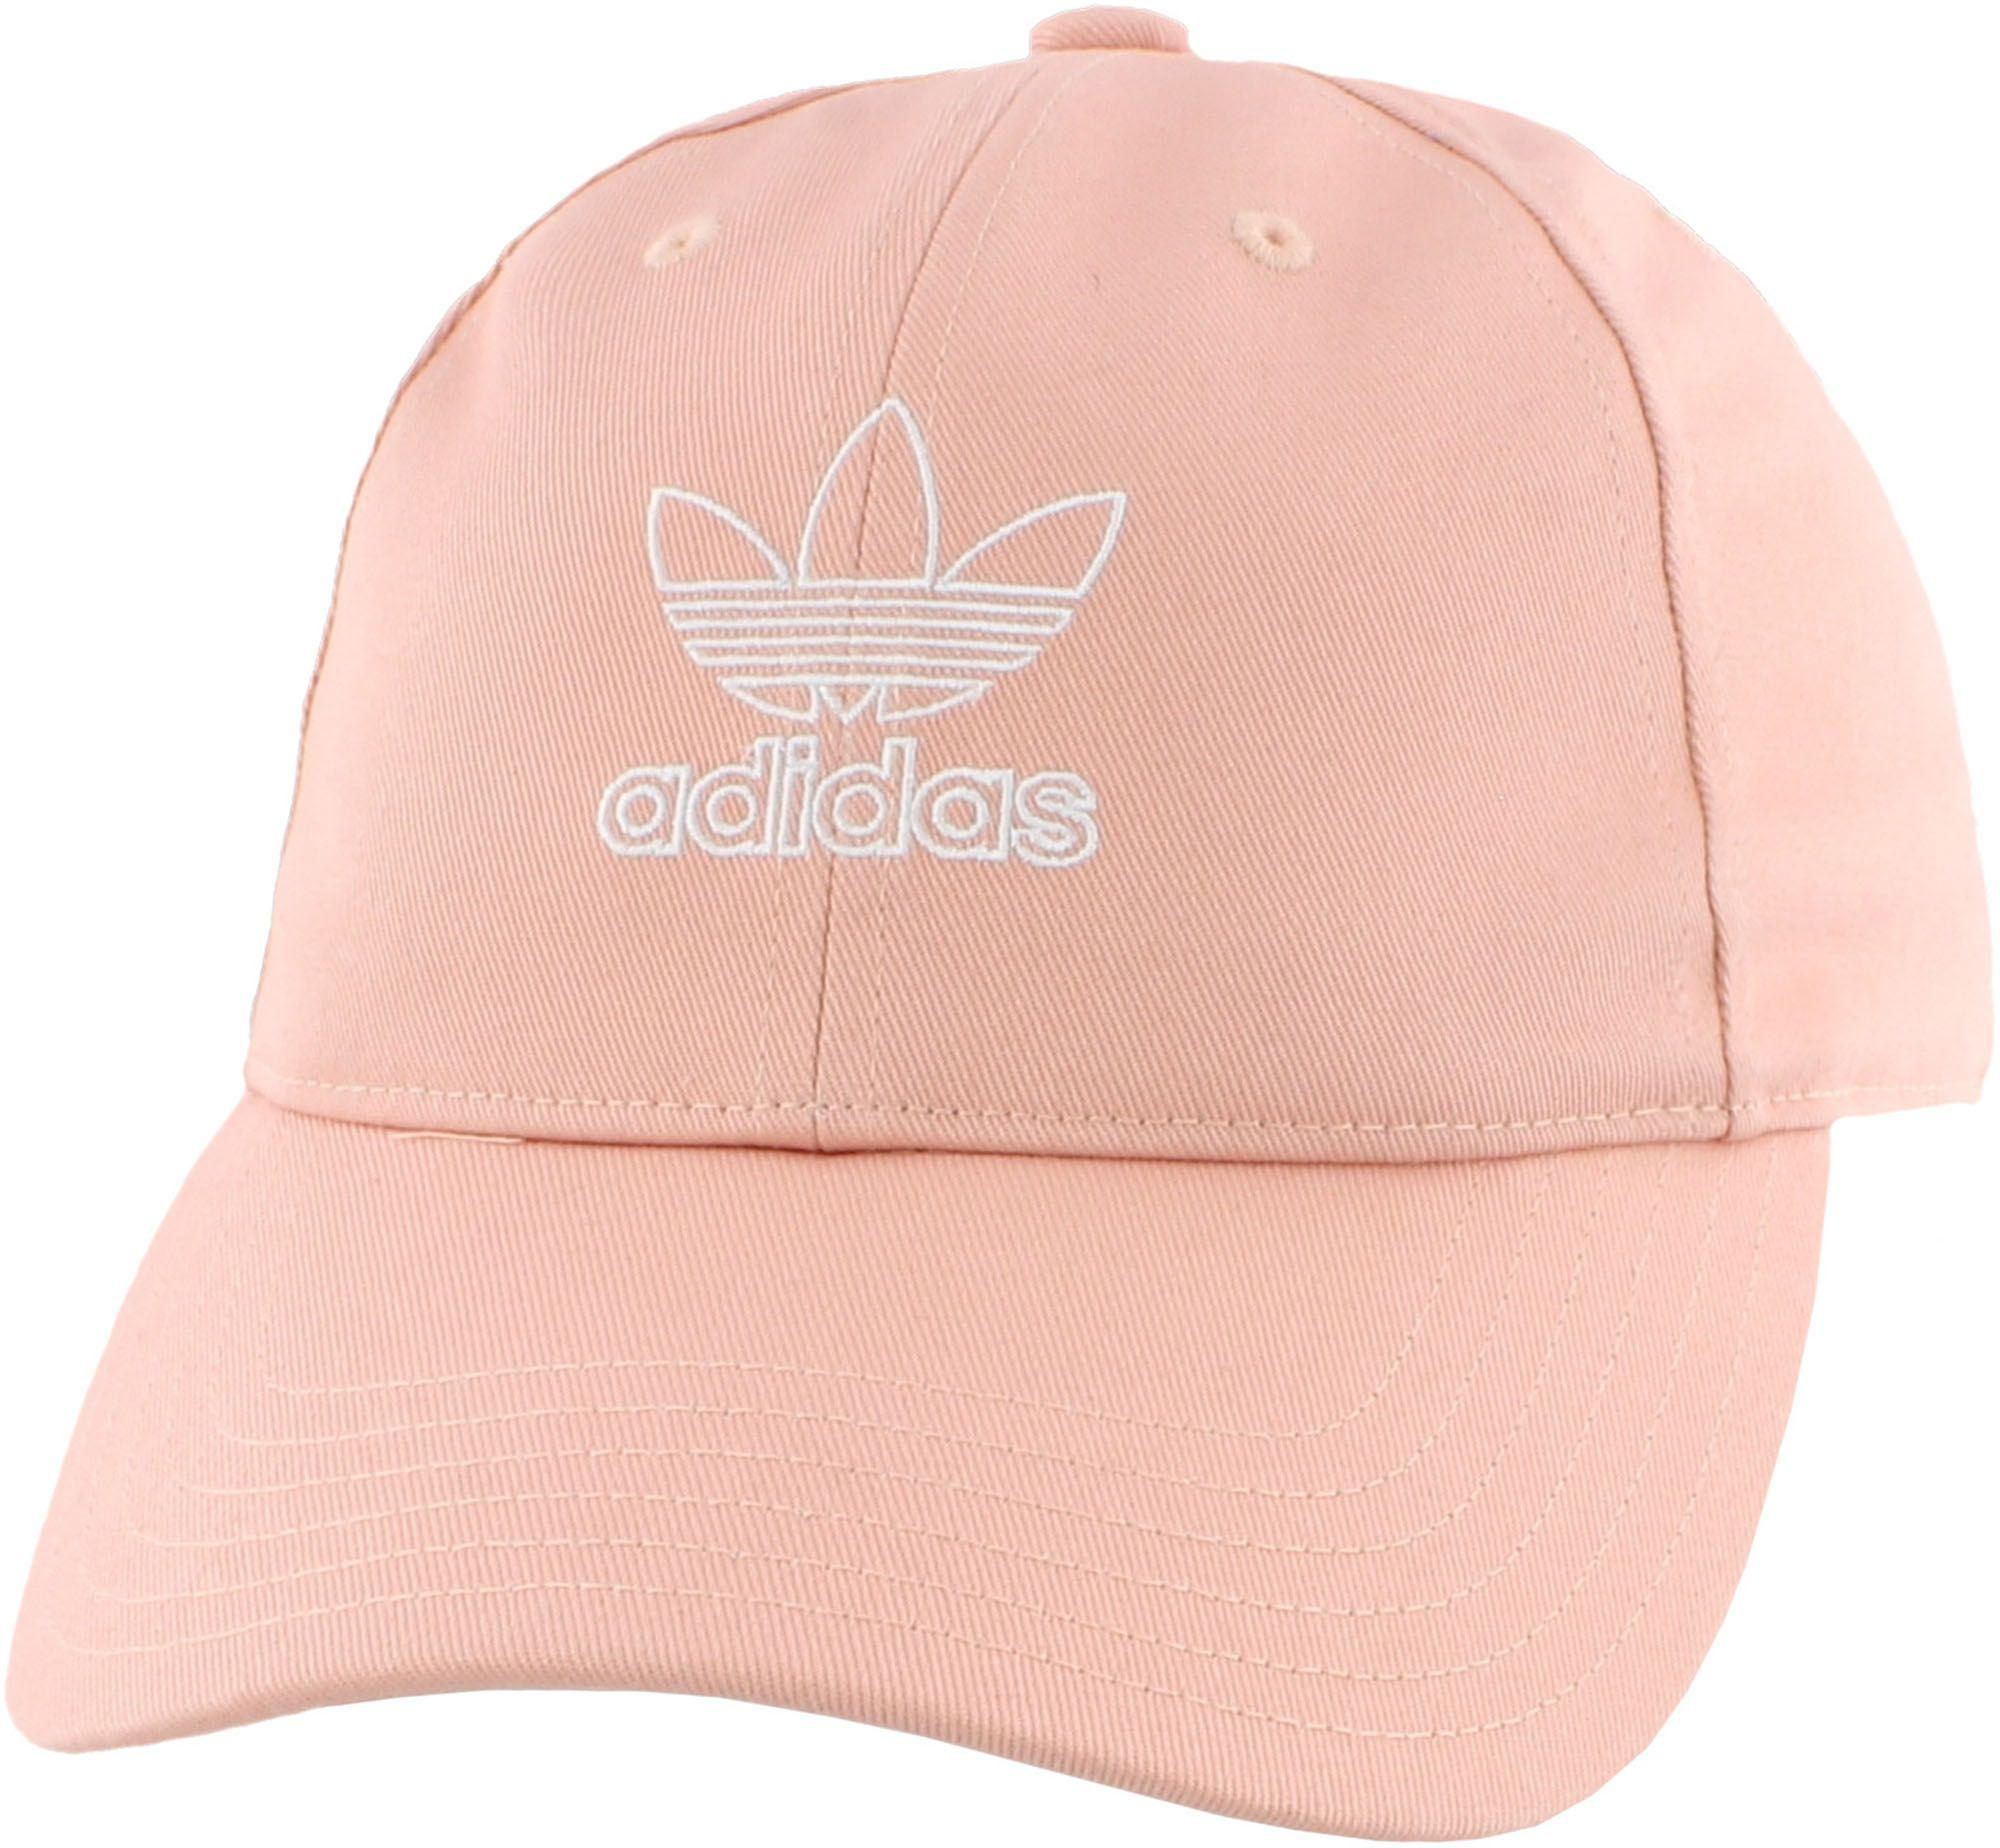 ad1edef30a4c7 Adidas - Pink Originals Relaxed Outline Hat - Lyst. View fullscreen